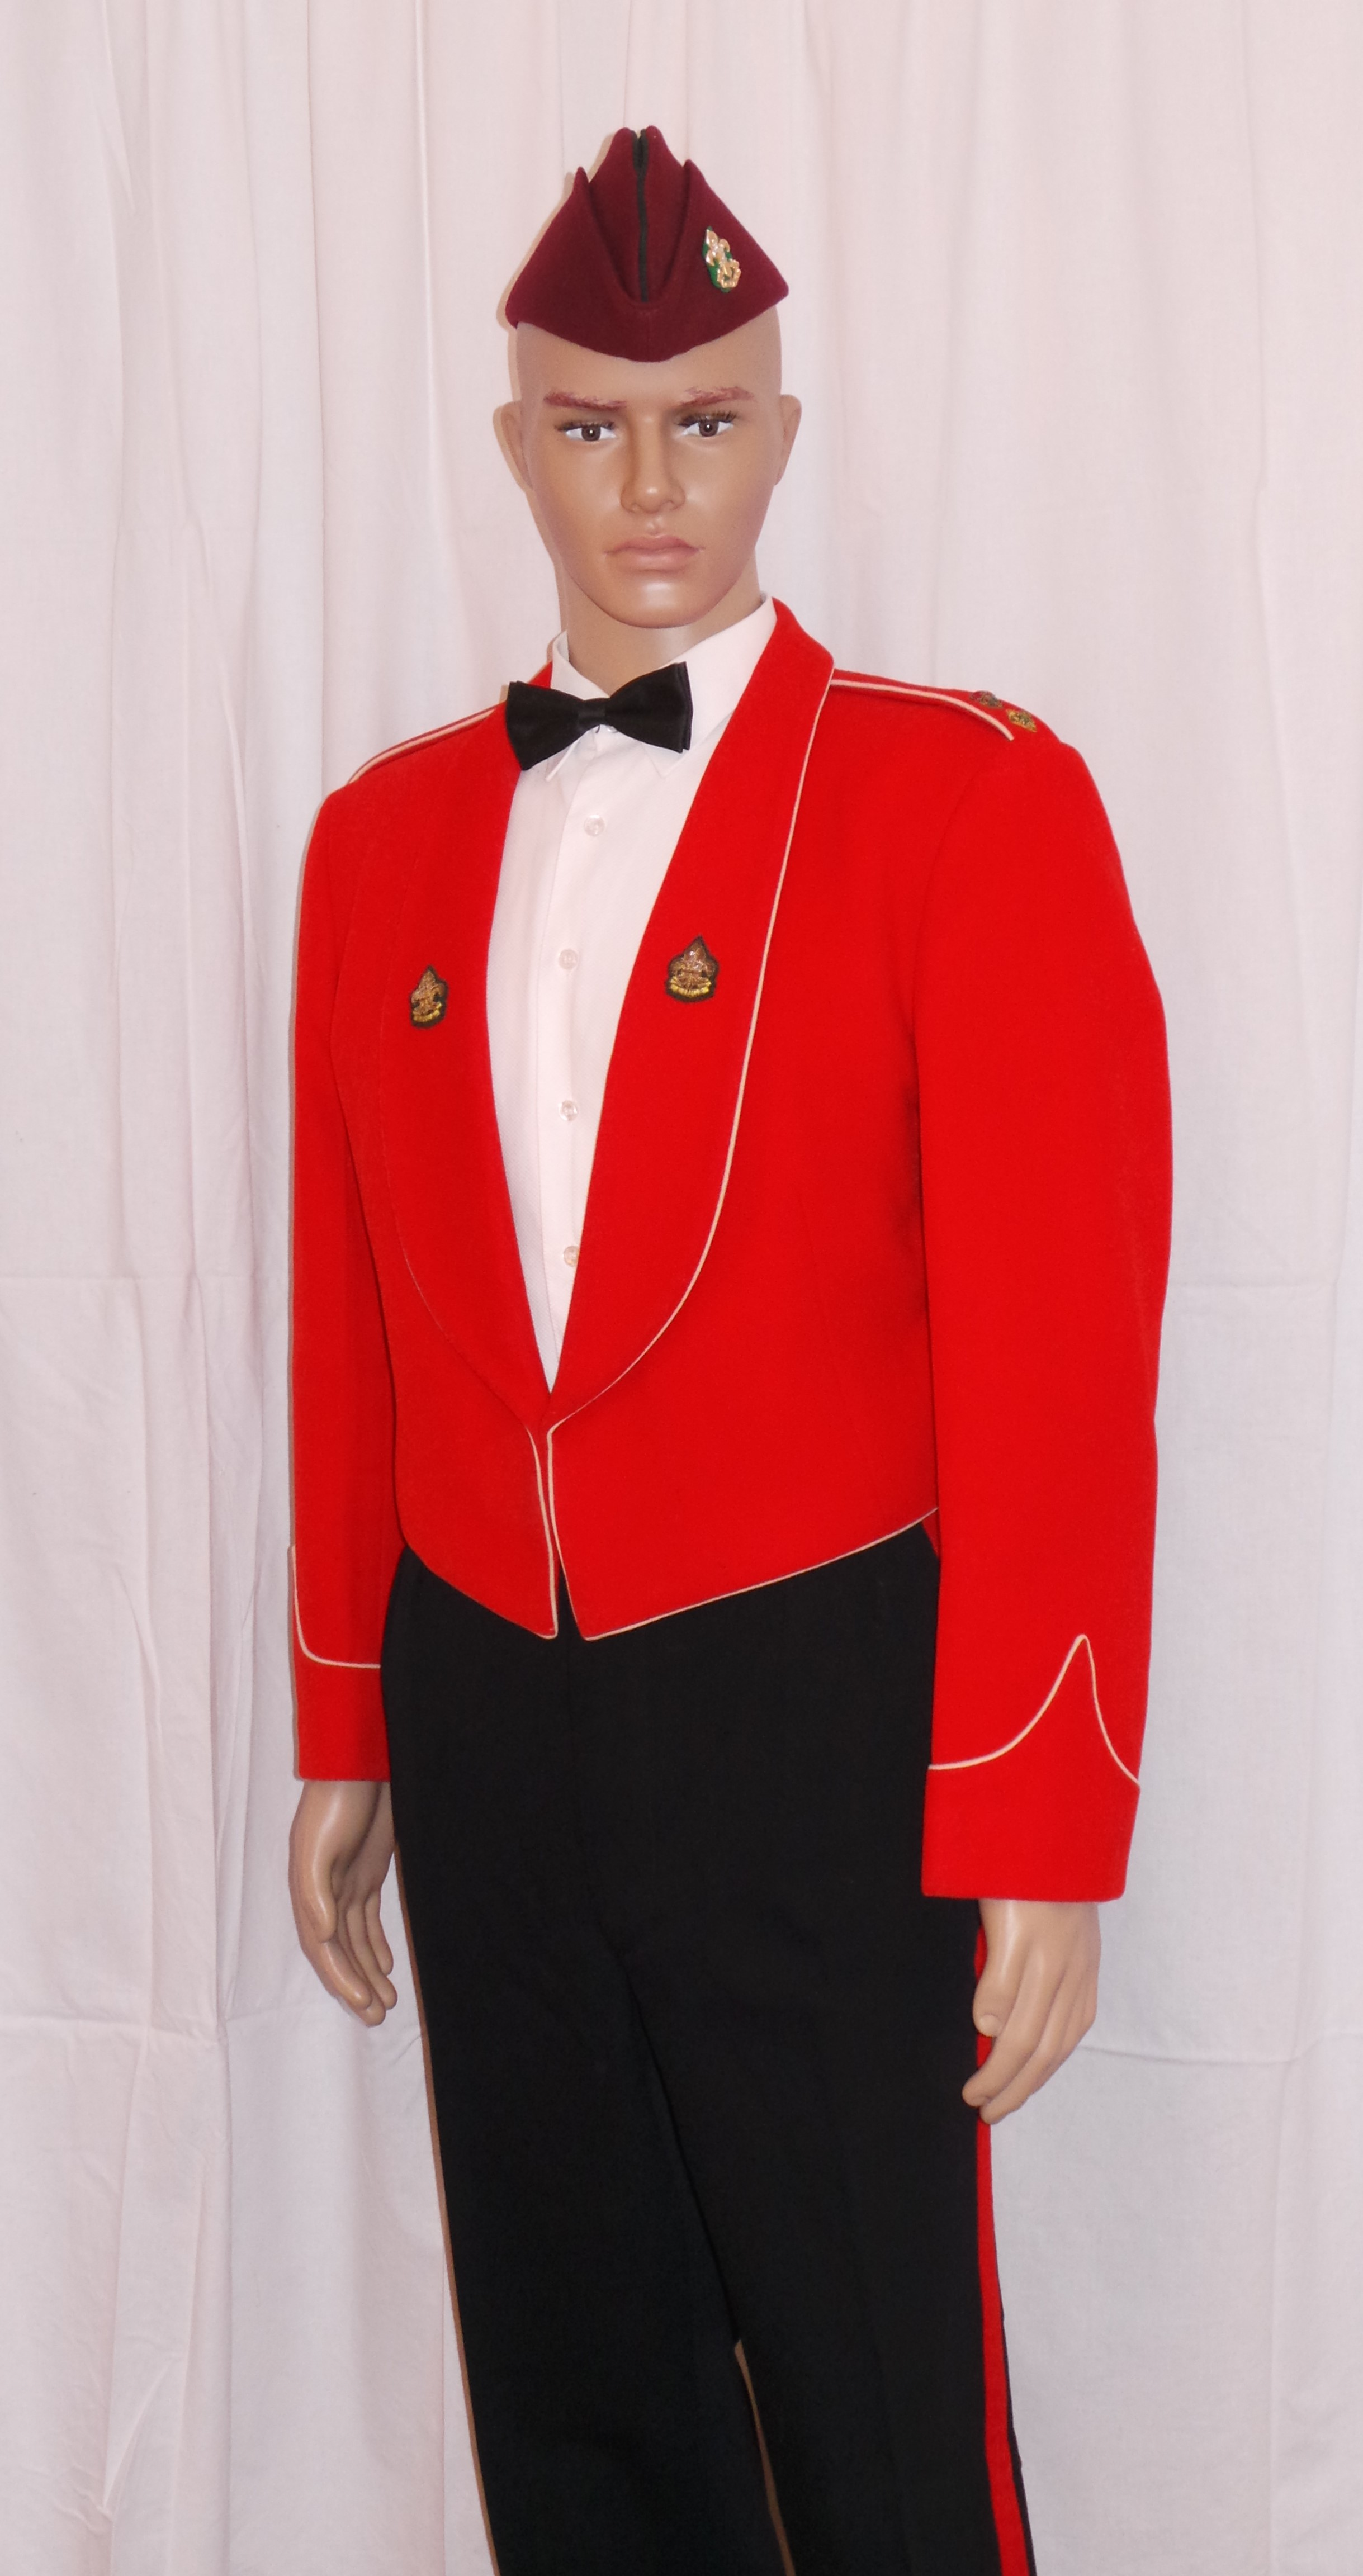 02 UK Army The Kings Regient Mess Dress